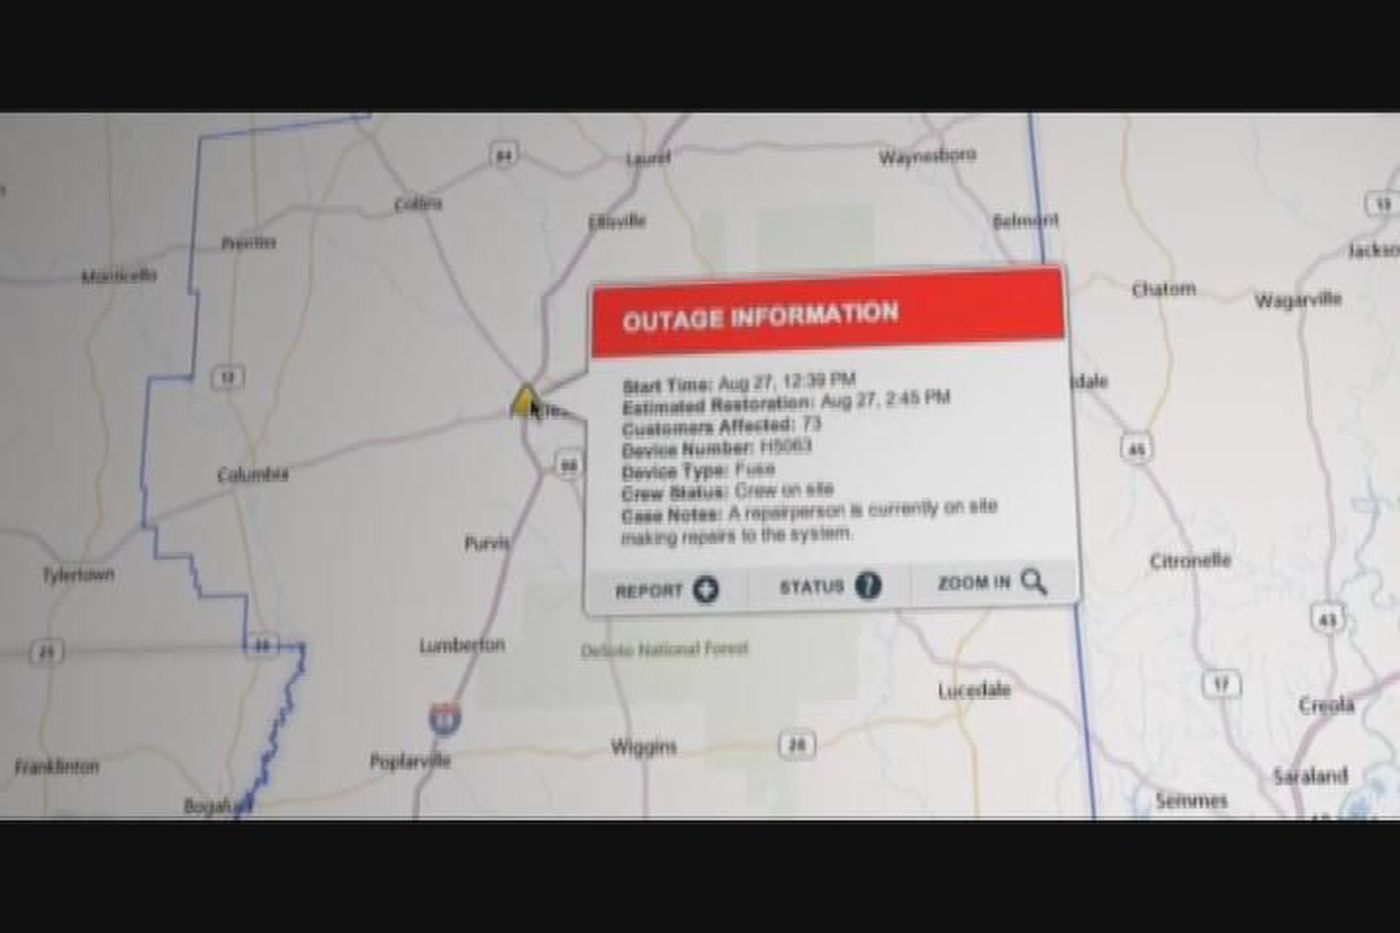 Mississippi Power Outage Map Online outage map to help Miss. Power customers